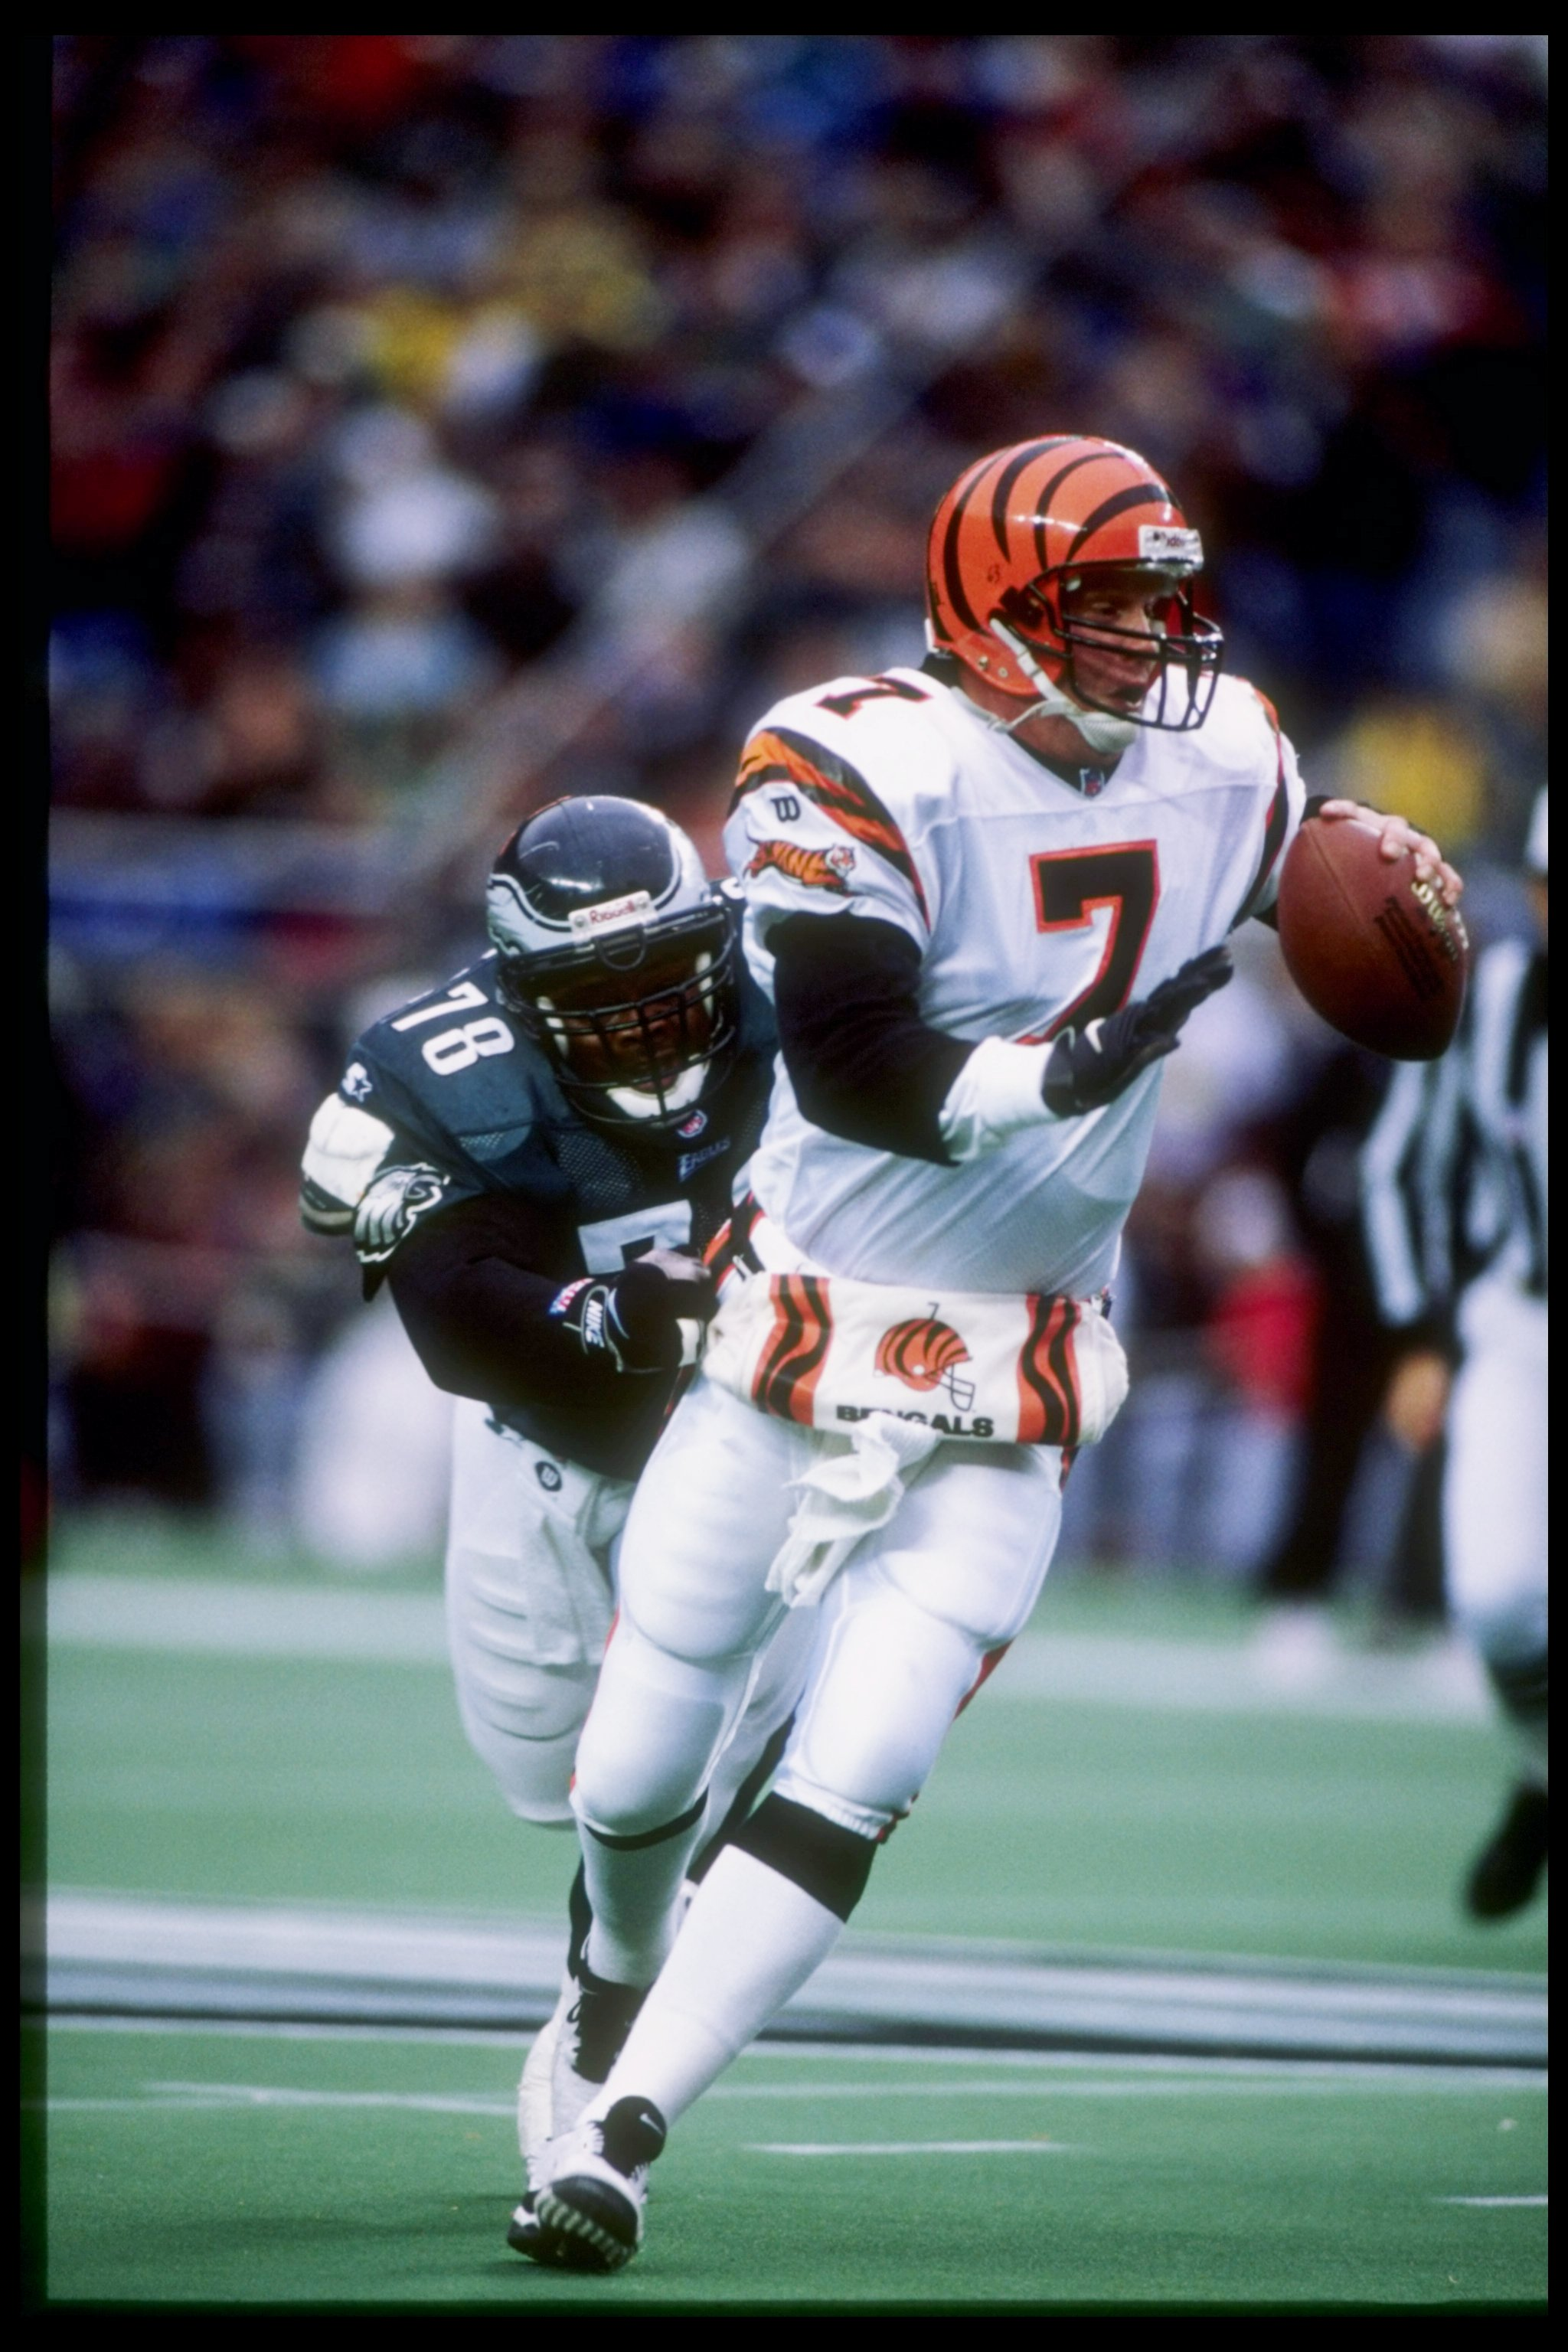 30 Nov 1997 Quarterback Boomer Esiason Of The Cincinnati Bengals Tries To Get Away From